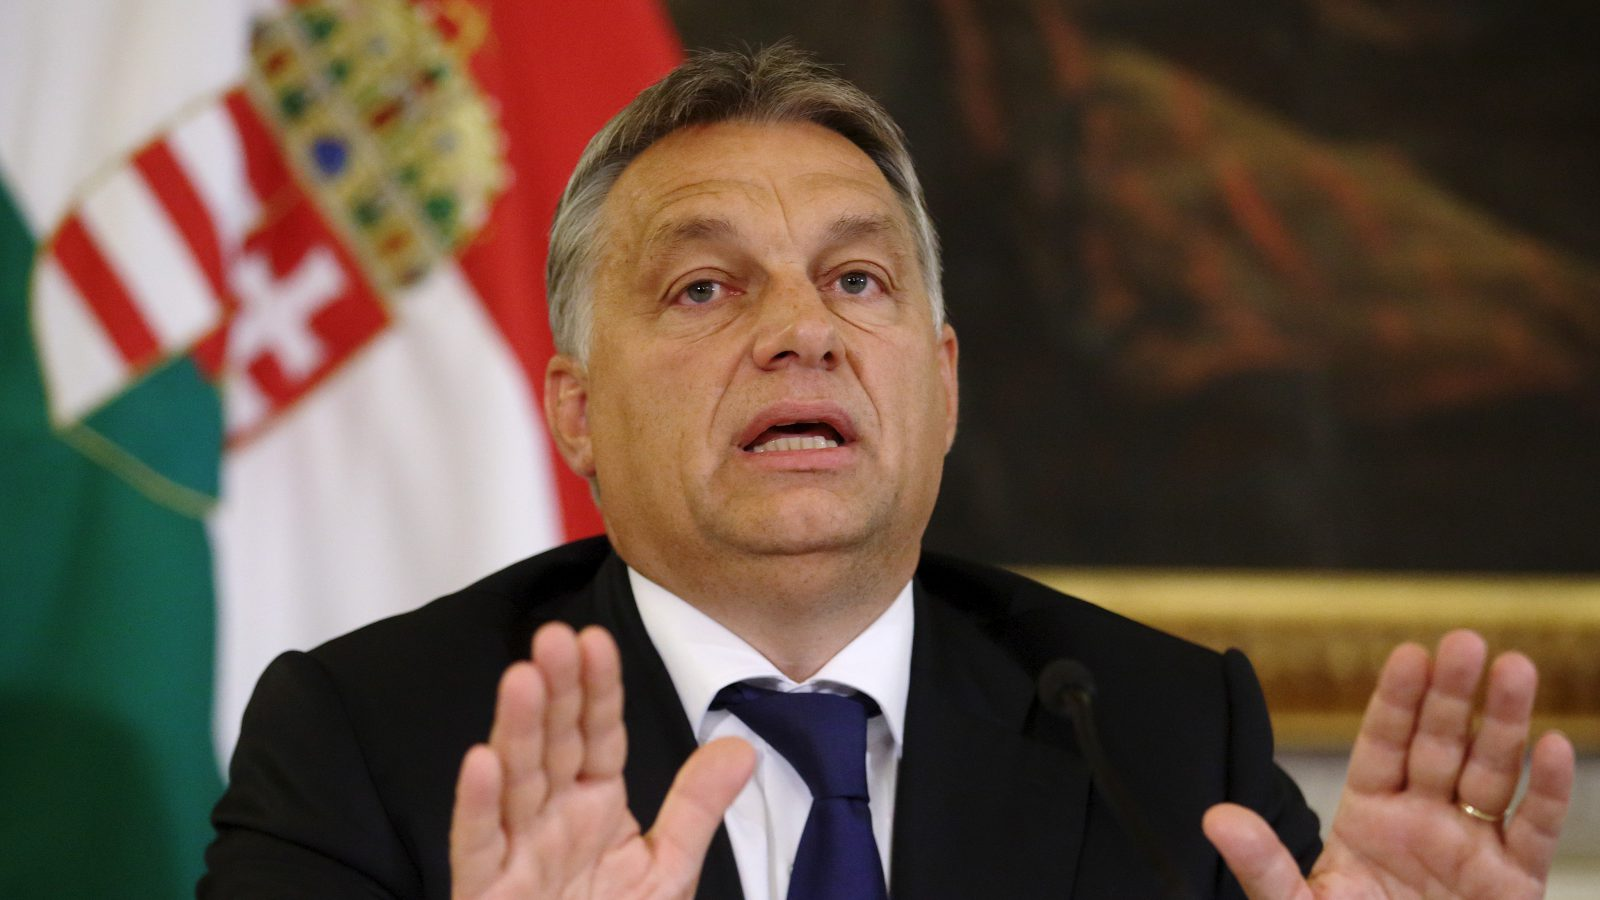 Hungary's Prime Minister Viktor Orban addresses a news conference in Vienna, Austria, September 25, 2015. Hungary will seek support for its efforts to try to block the flood of migrants on its southern border with Croatia, similar to the measures implemented on its border with Serbia, Prime Minister Viktor Orban said in Vienna on Friday.